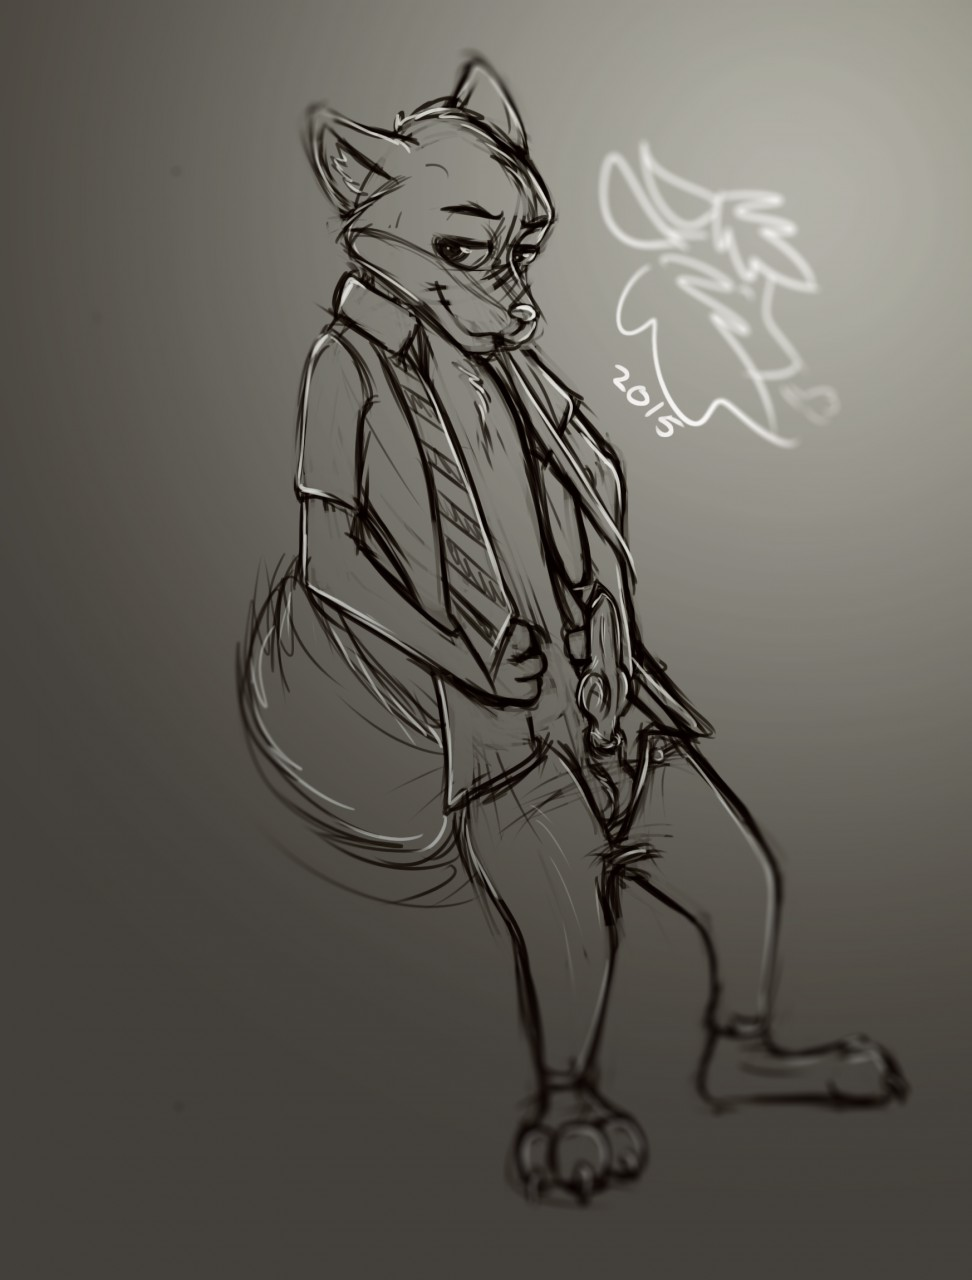 nick male wilde reader x Shadow the hedgehog front view